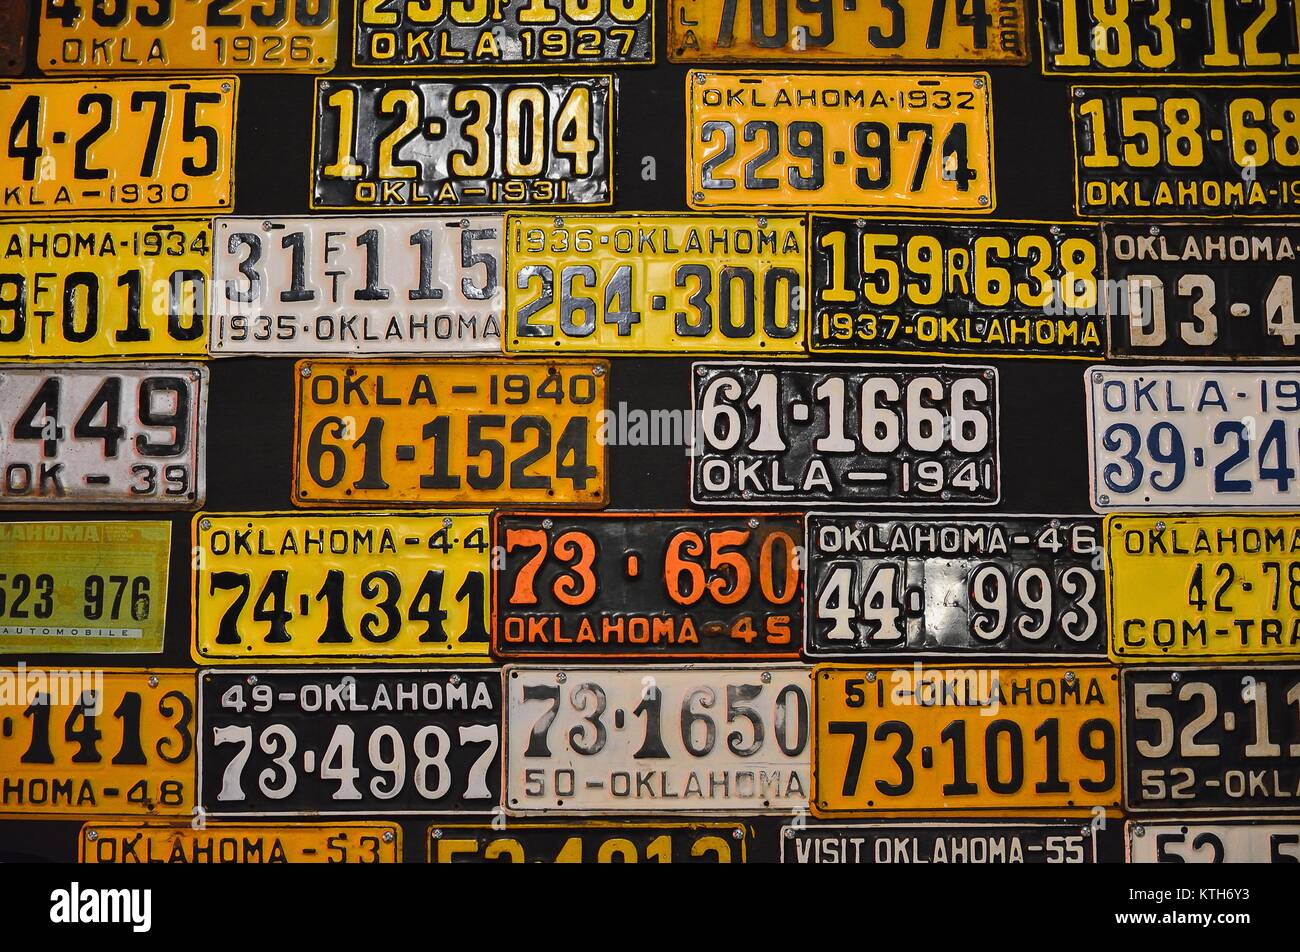 Old Car License Plates Stock Photos & Old Car License Plates Stock ...